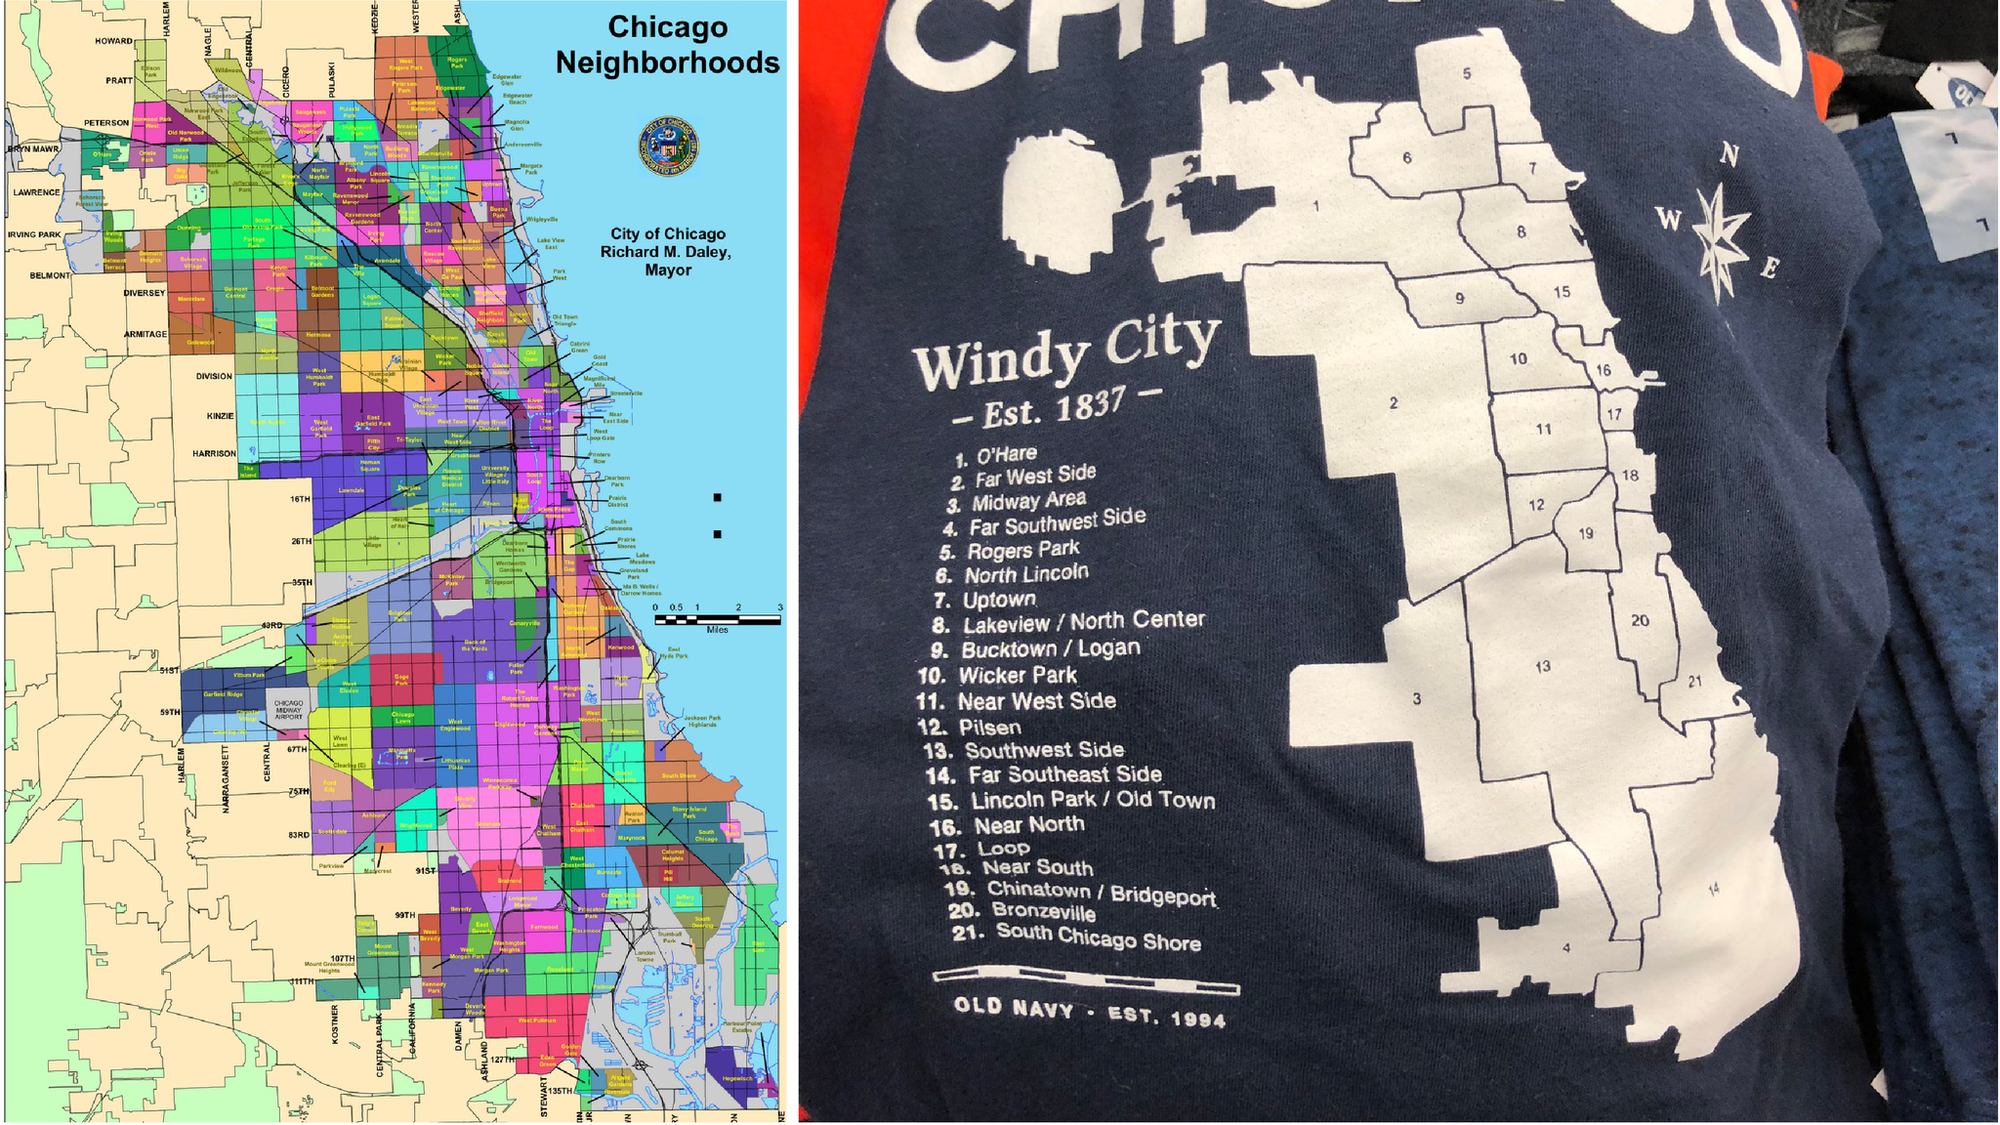 Old Navy Pledges To Replace T Shirt Design Dubbed Worst Chicago Map